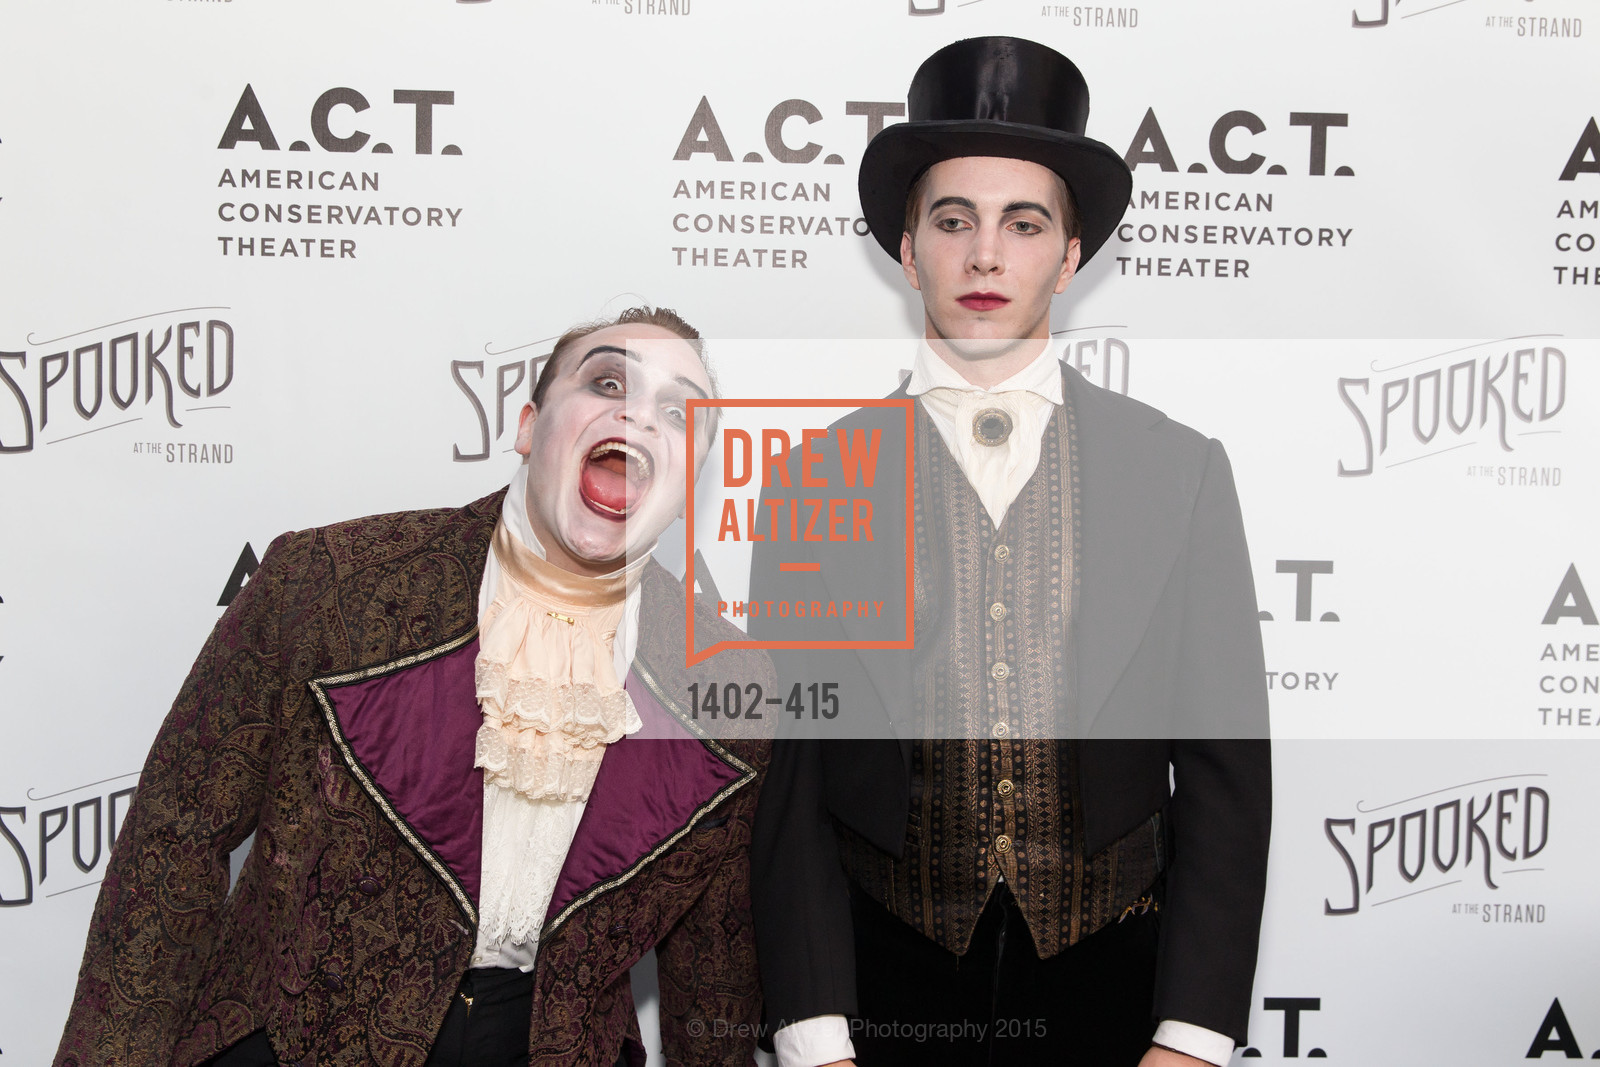 Peter Fanone, Justin Keim, SPOOKED AT THE STRAND Presented by the American Conservatory Theater, The Strand Theater. 1127 Market Street, October 26th, 2015,Drew Altizer, Drew Altizer Photography, full-service agency, private events, San Francisco photographer, photographer california